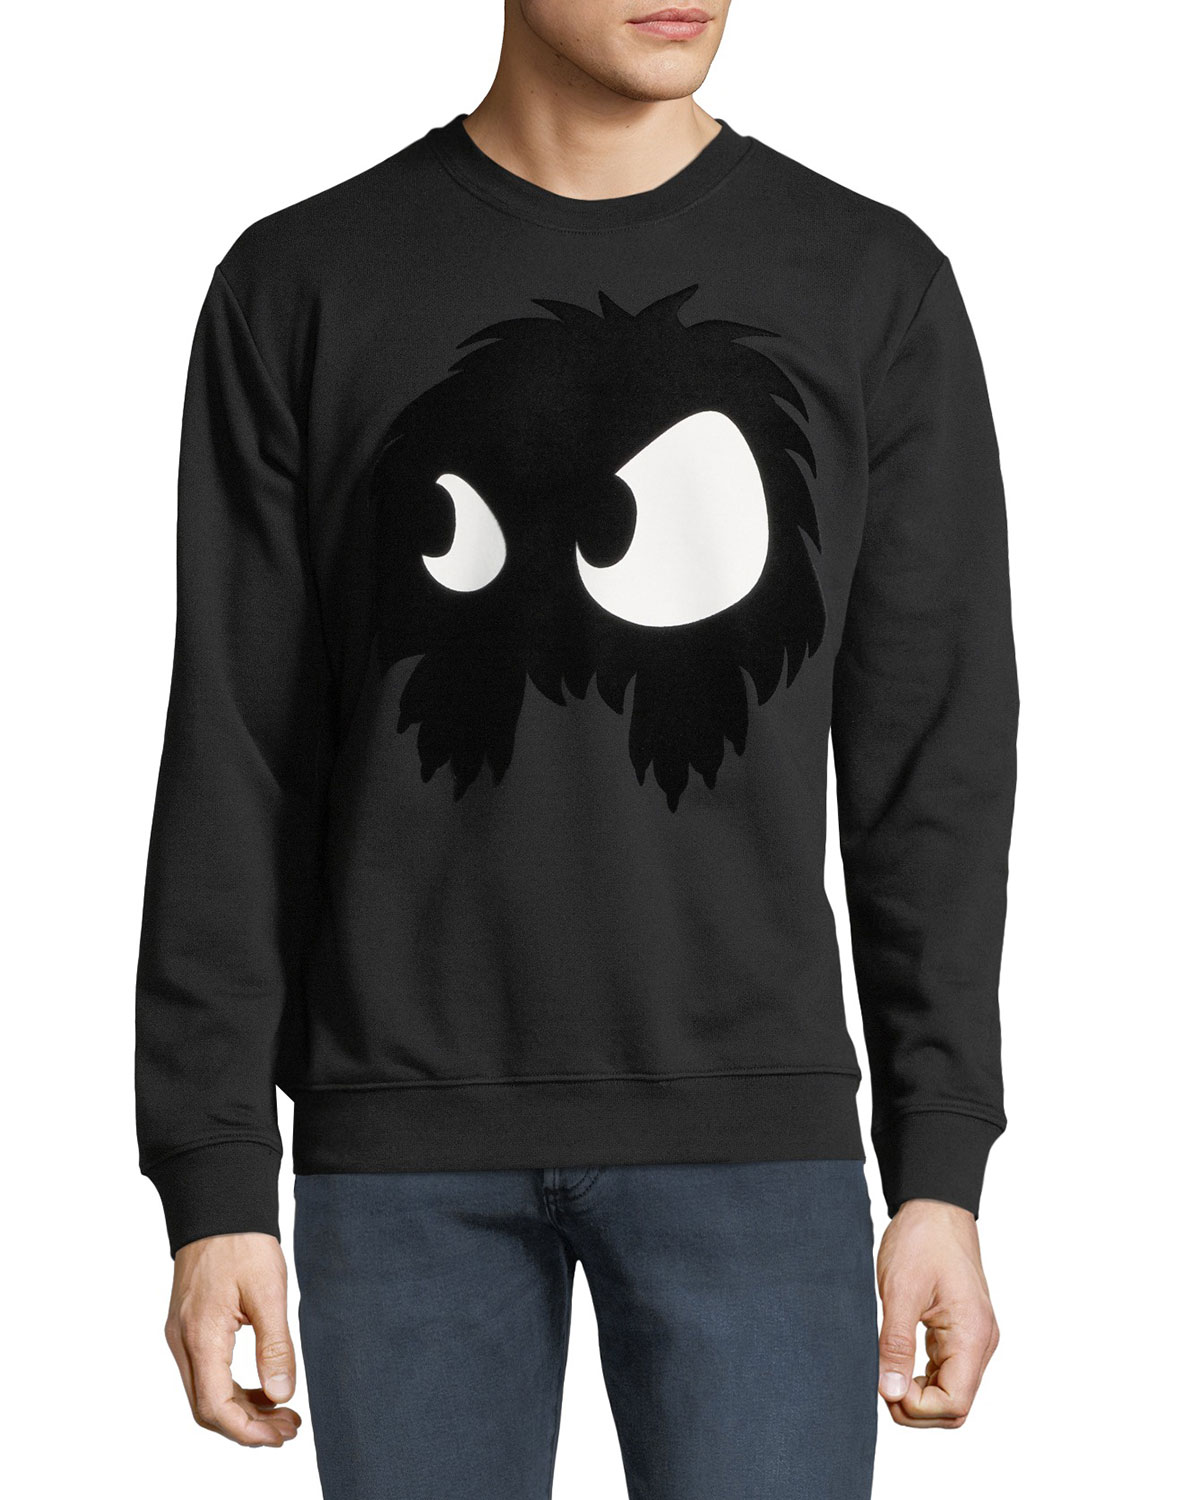 Men's Felt Monster-Graphic Sweatshirt